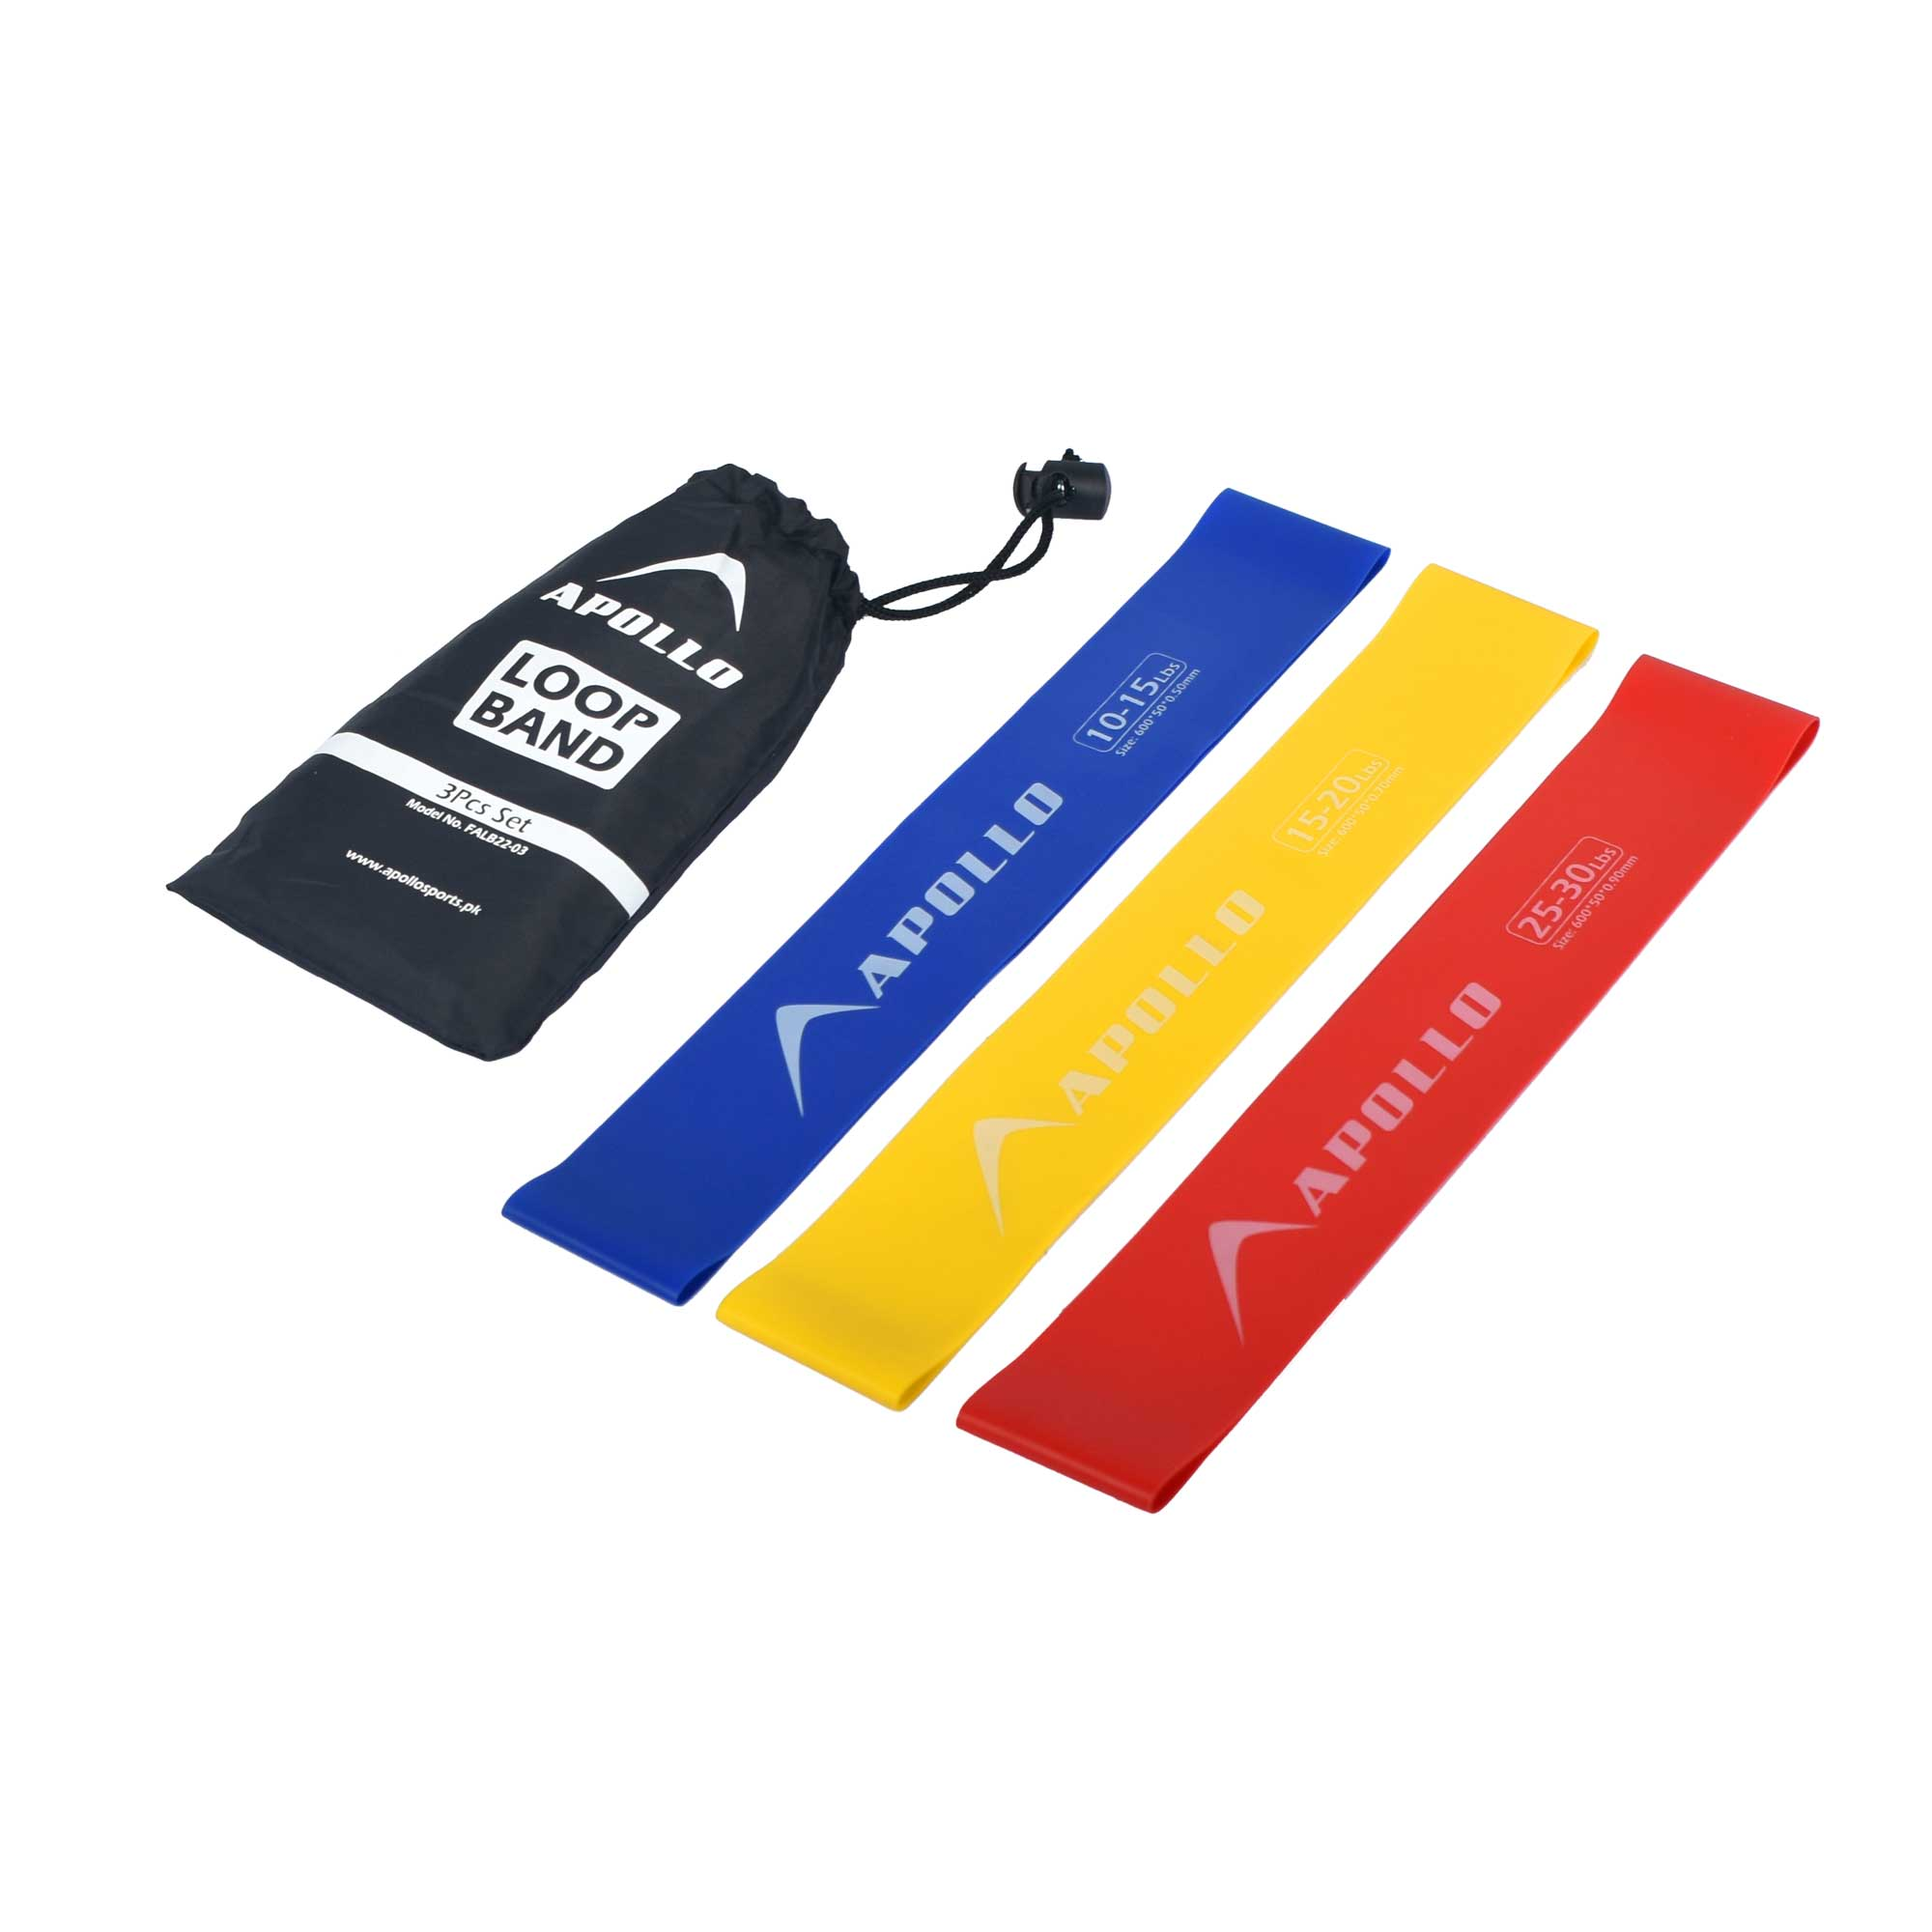 3PCS LOOP RESISTANCE BANDS GYM TRAINING LOOPS APOLLO FALB22-03